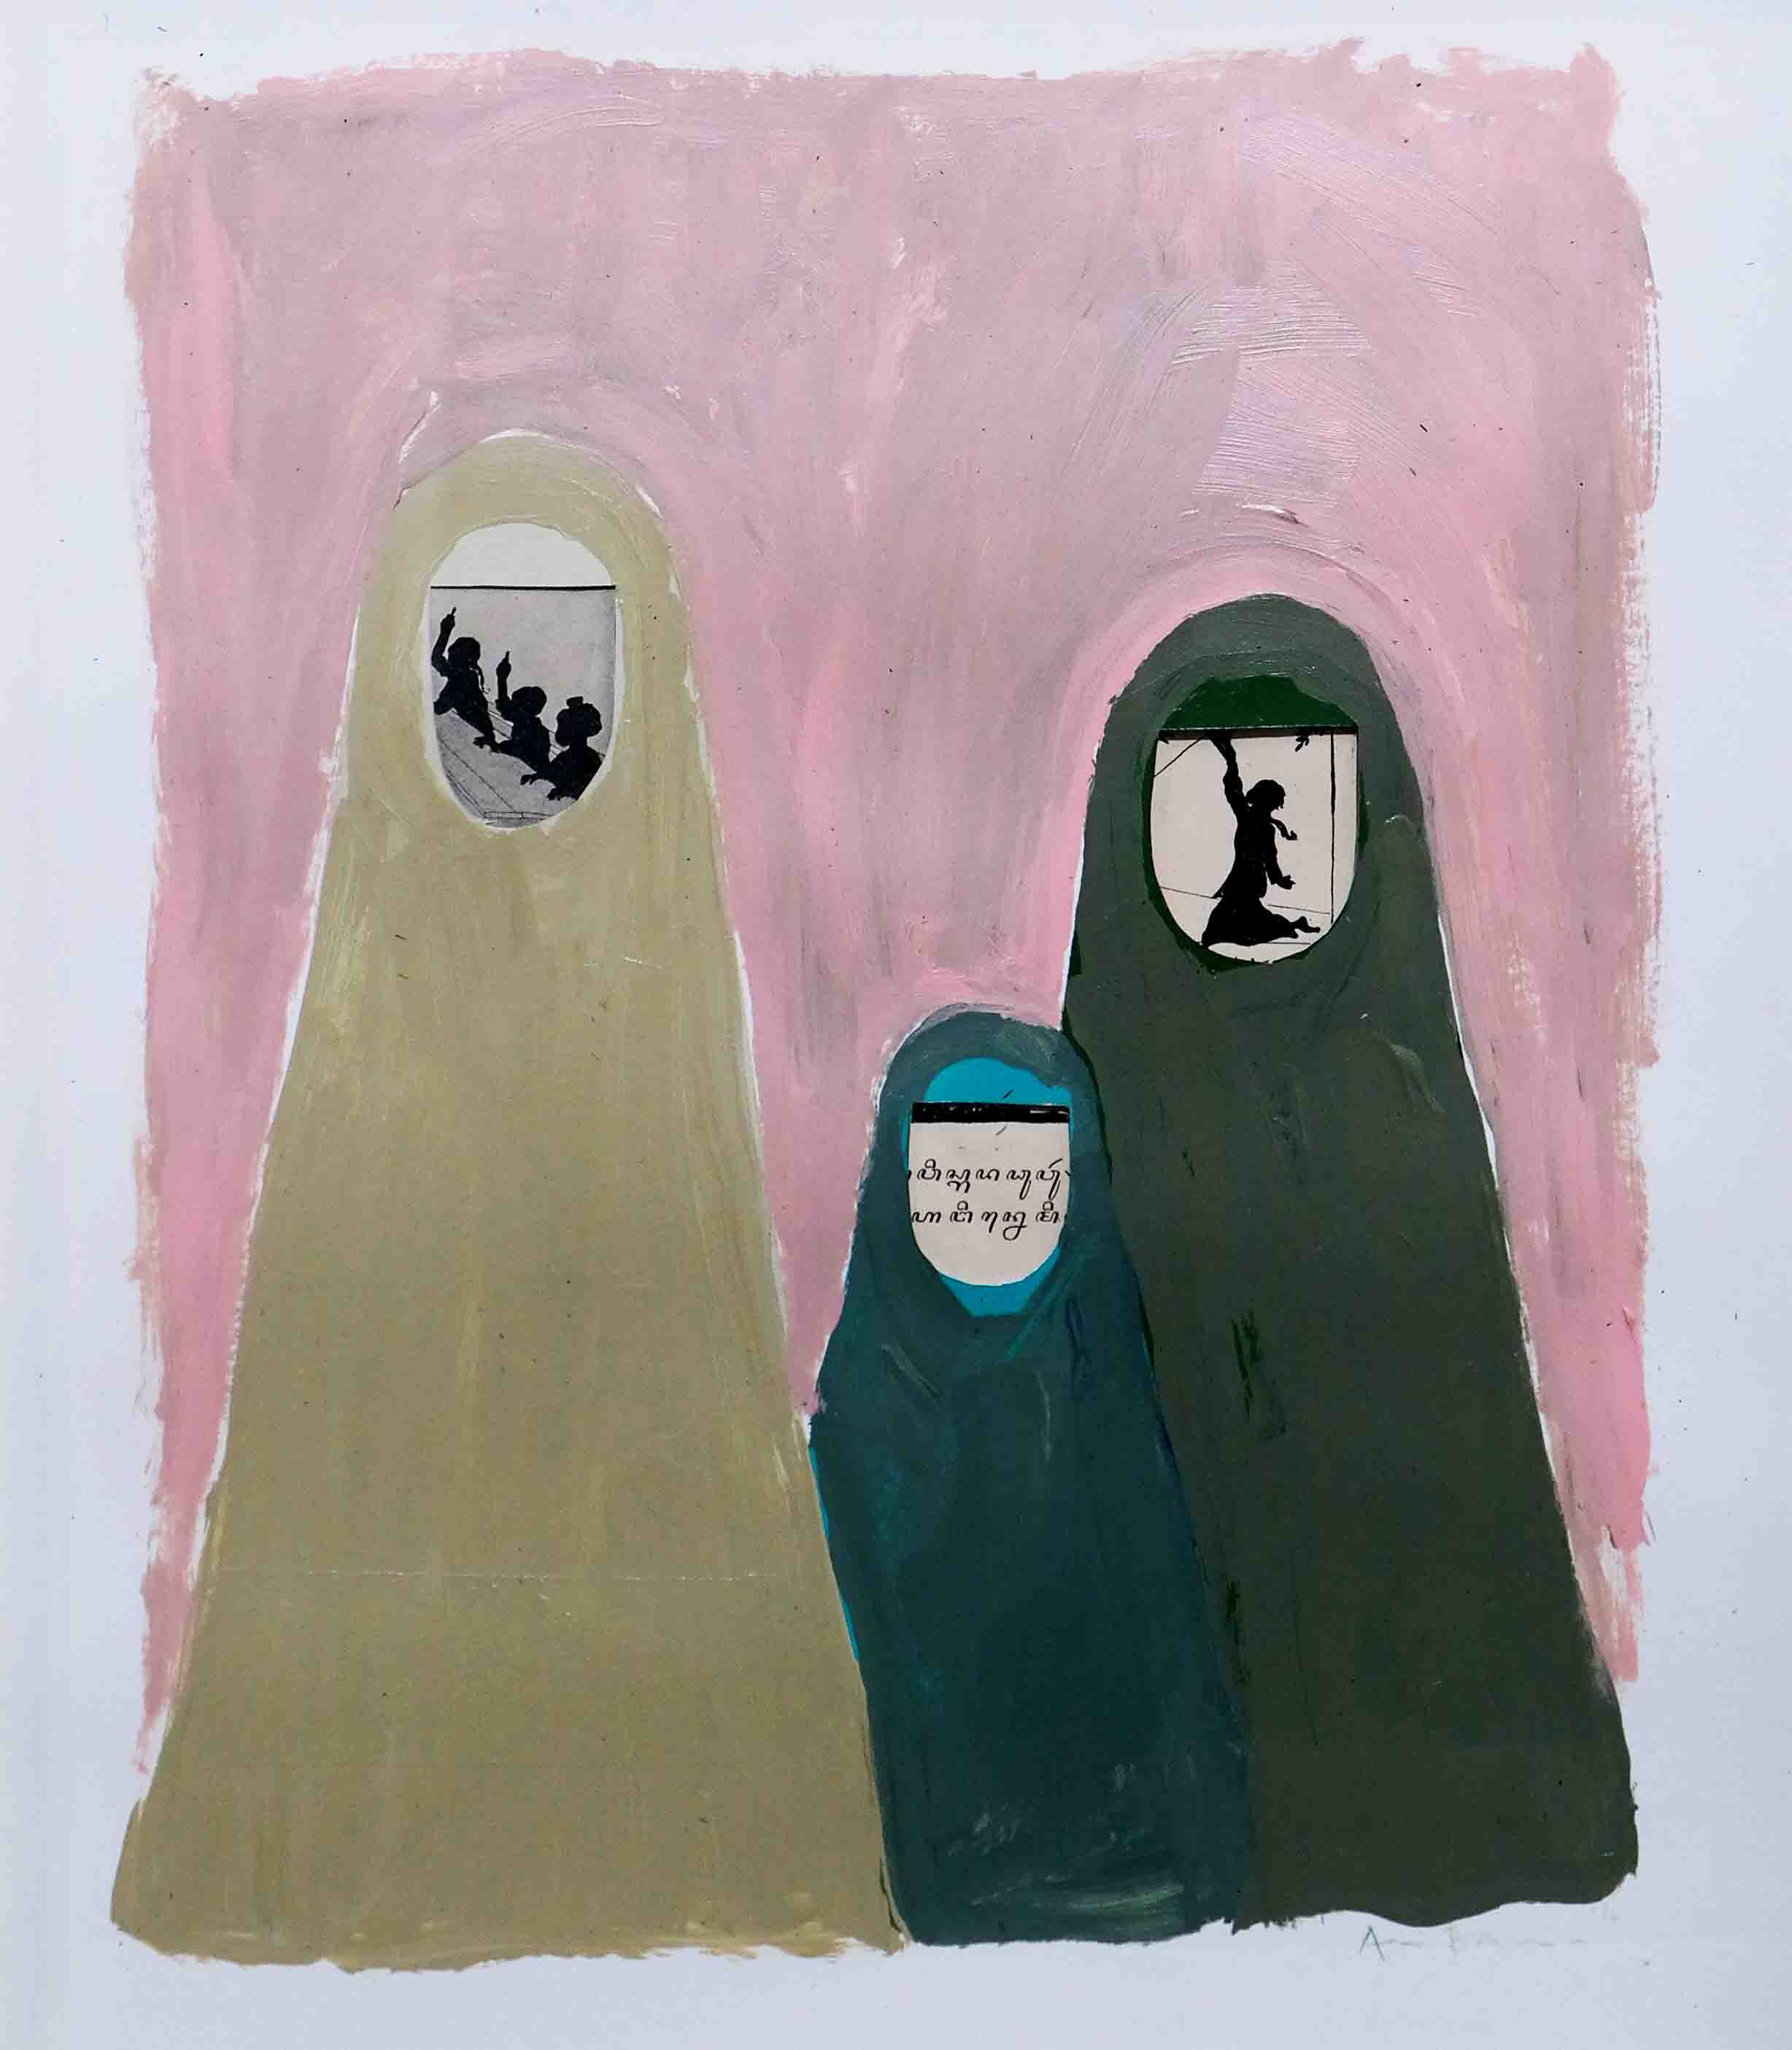 Sisterhood #2, 46 x 38 x 3 cm, 2016, Acrylic Paint, Old Paper on Paper